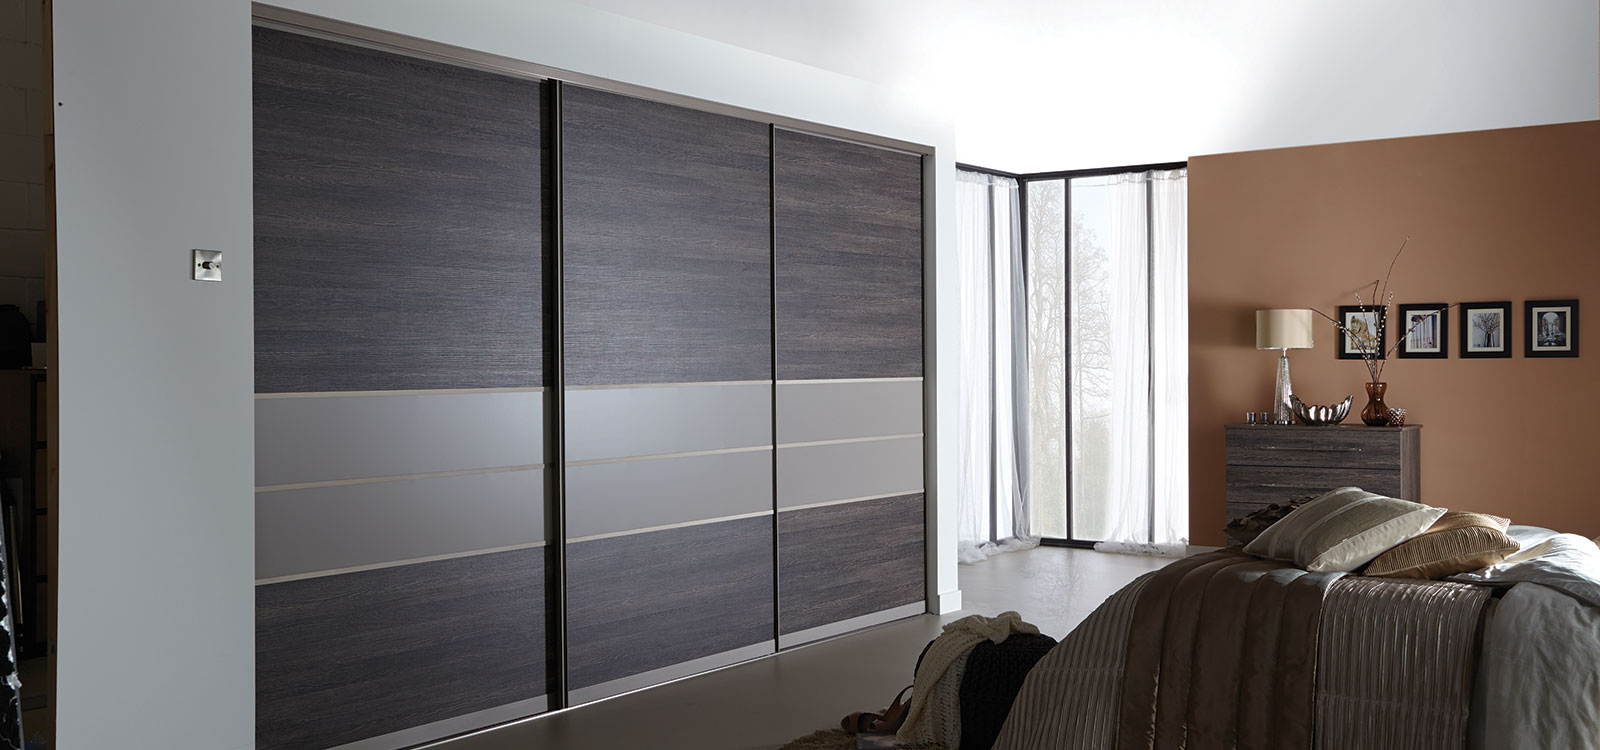 Stunning Sliding Wardrobes Hampshire Surrey fitted sliding wardrobes